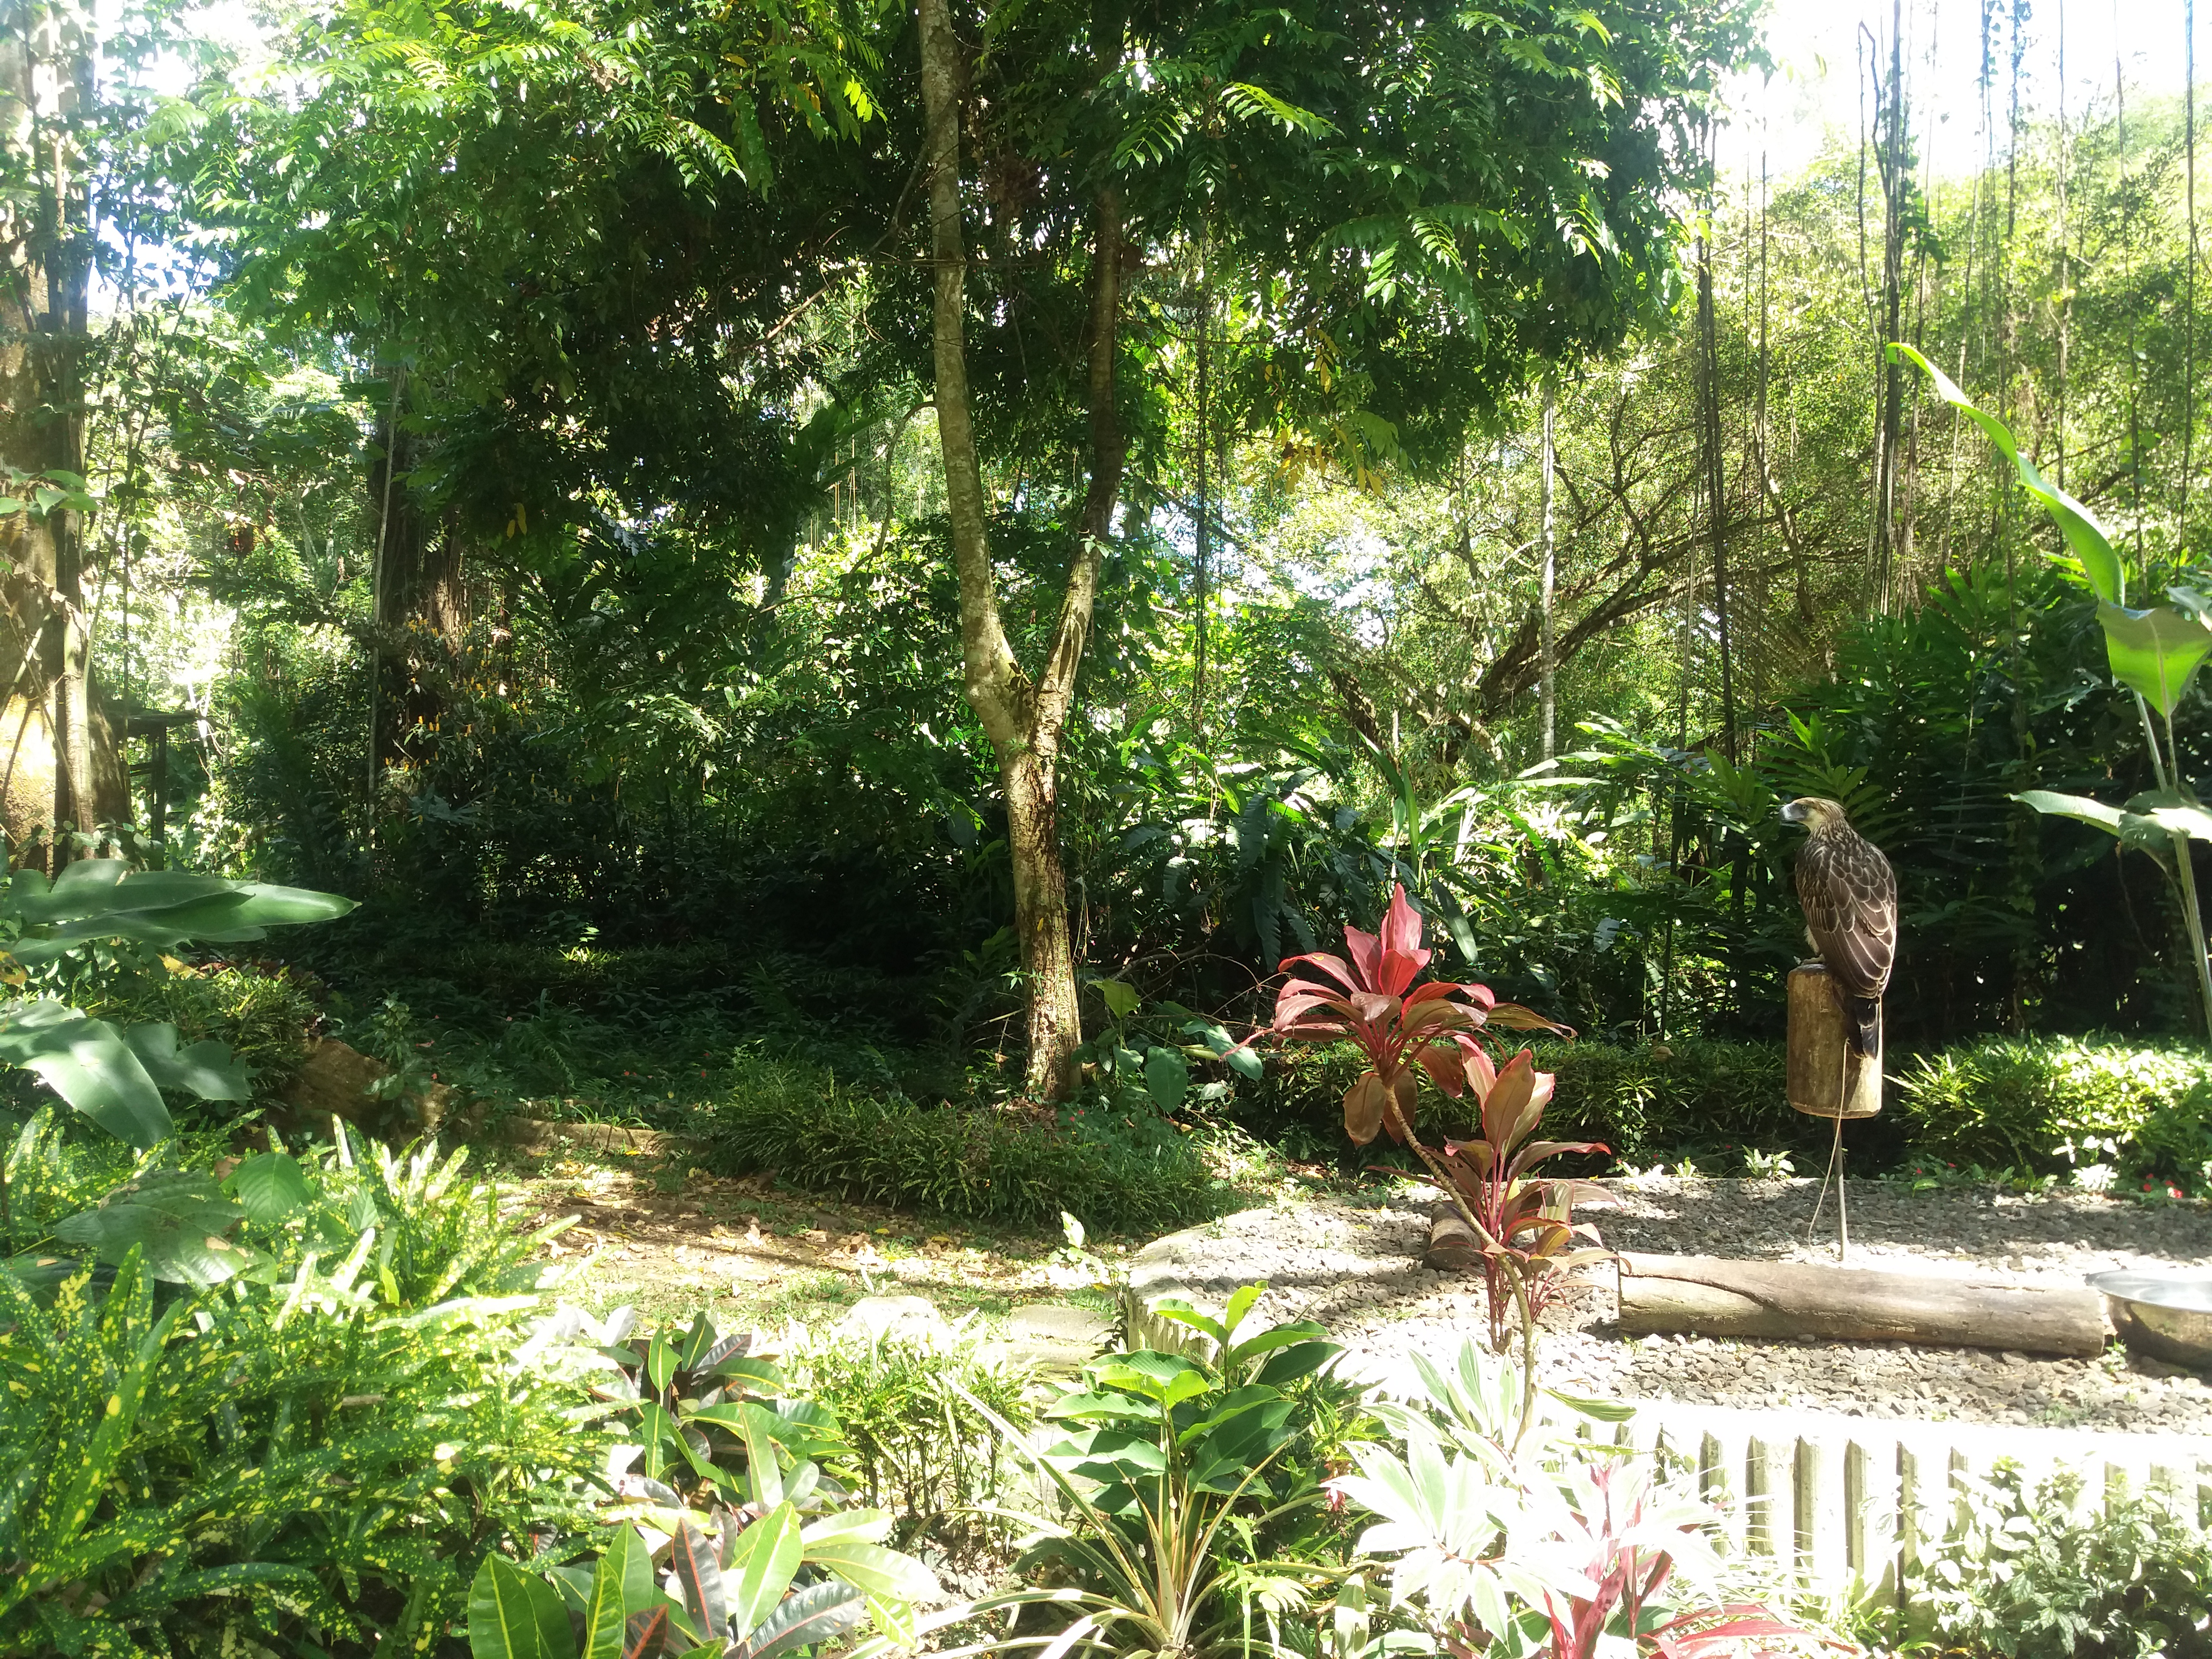 5 Parks to Visit in Davao City, Philippines (Things to do in Davao City) 03